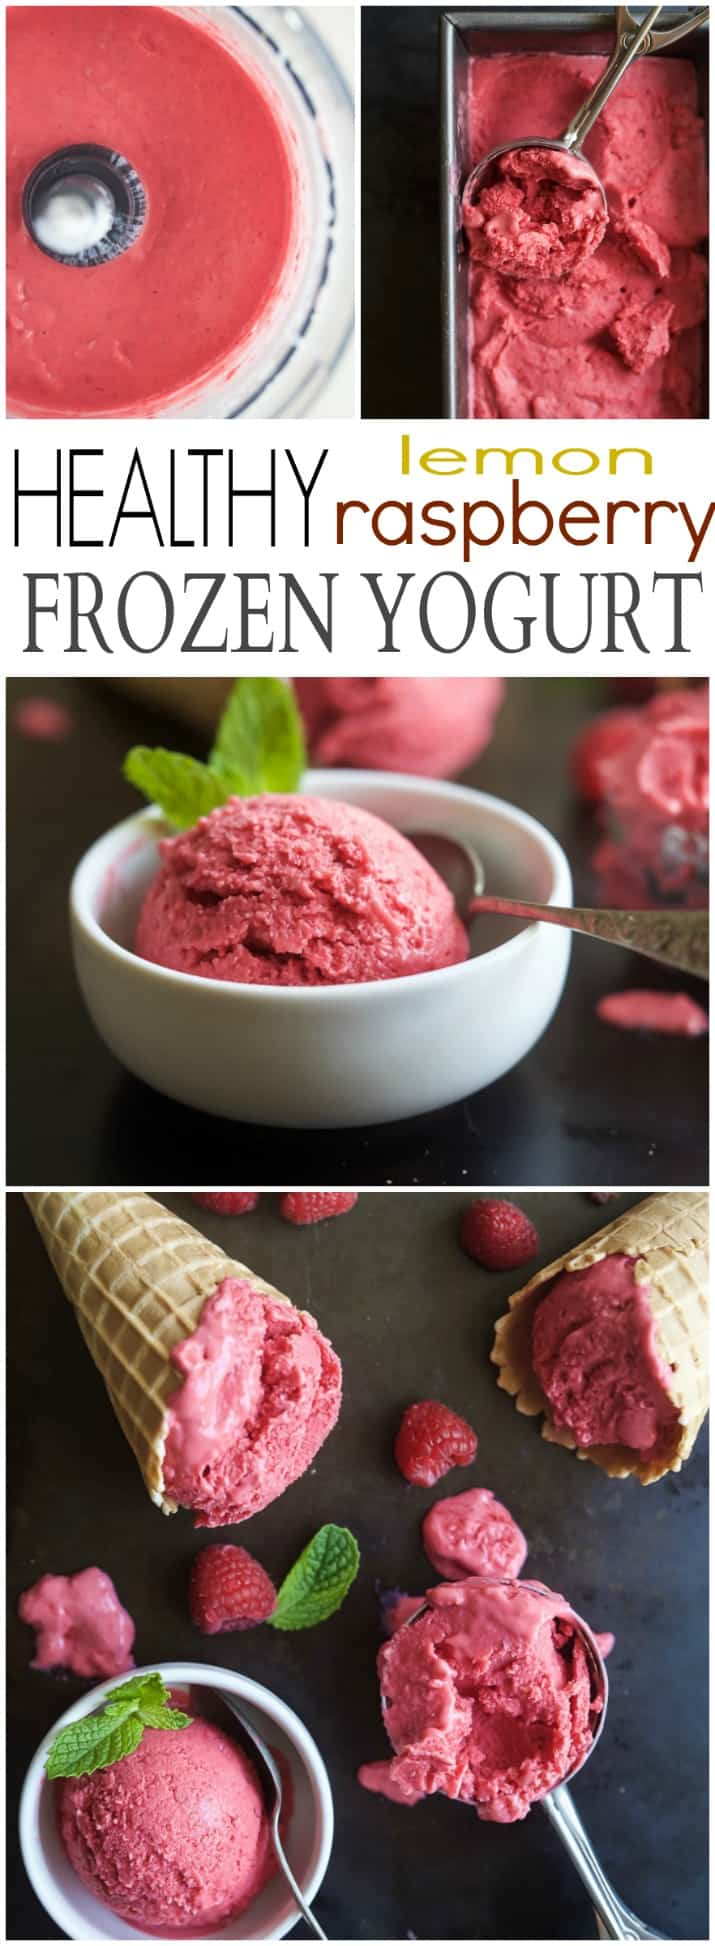 5 Minute Lemon Raspberry Frozen Yogurt using only 4 ingredients - it's healthy, sweet, delicious and so easy to make! | gluten free recipes